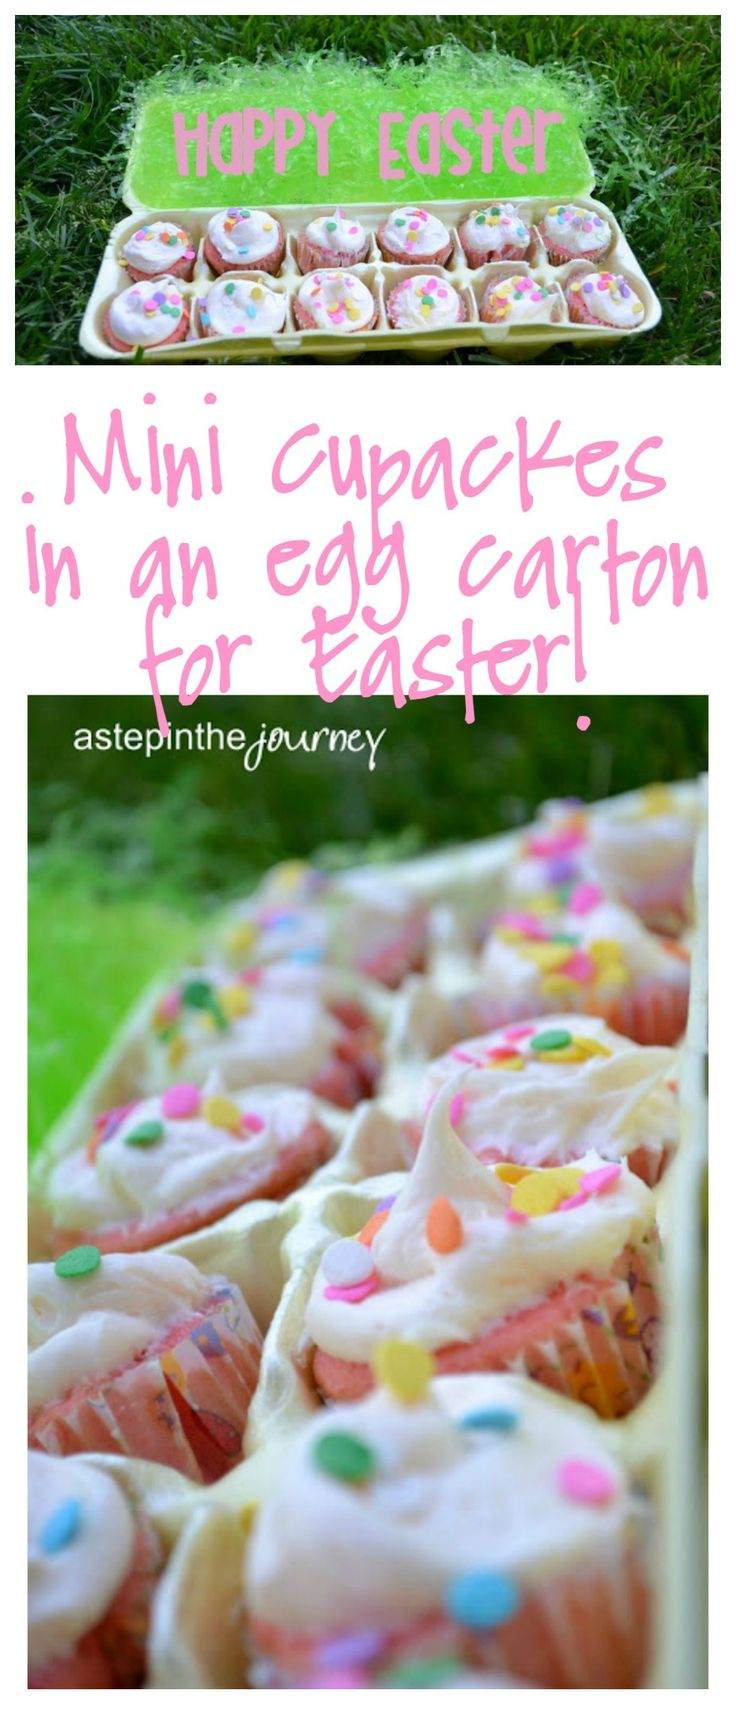 Such a creative way to display cupcakes at Easter! The kids would love this!